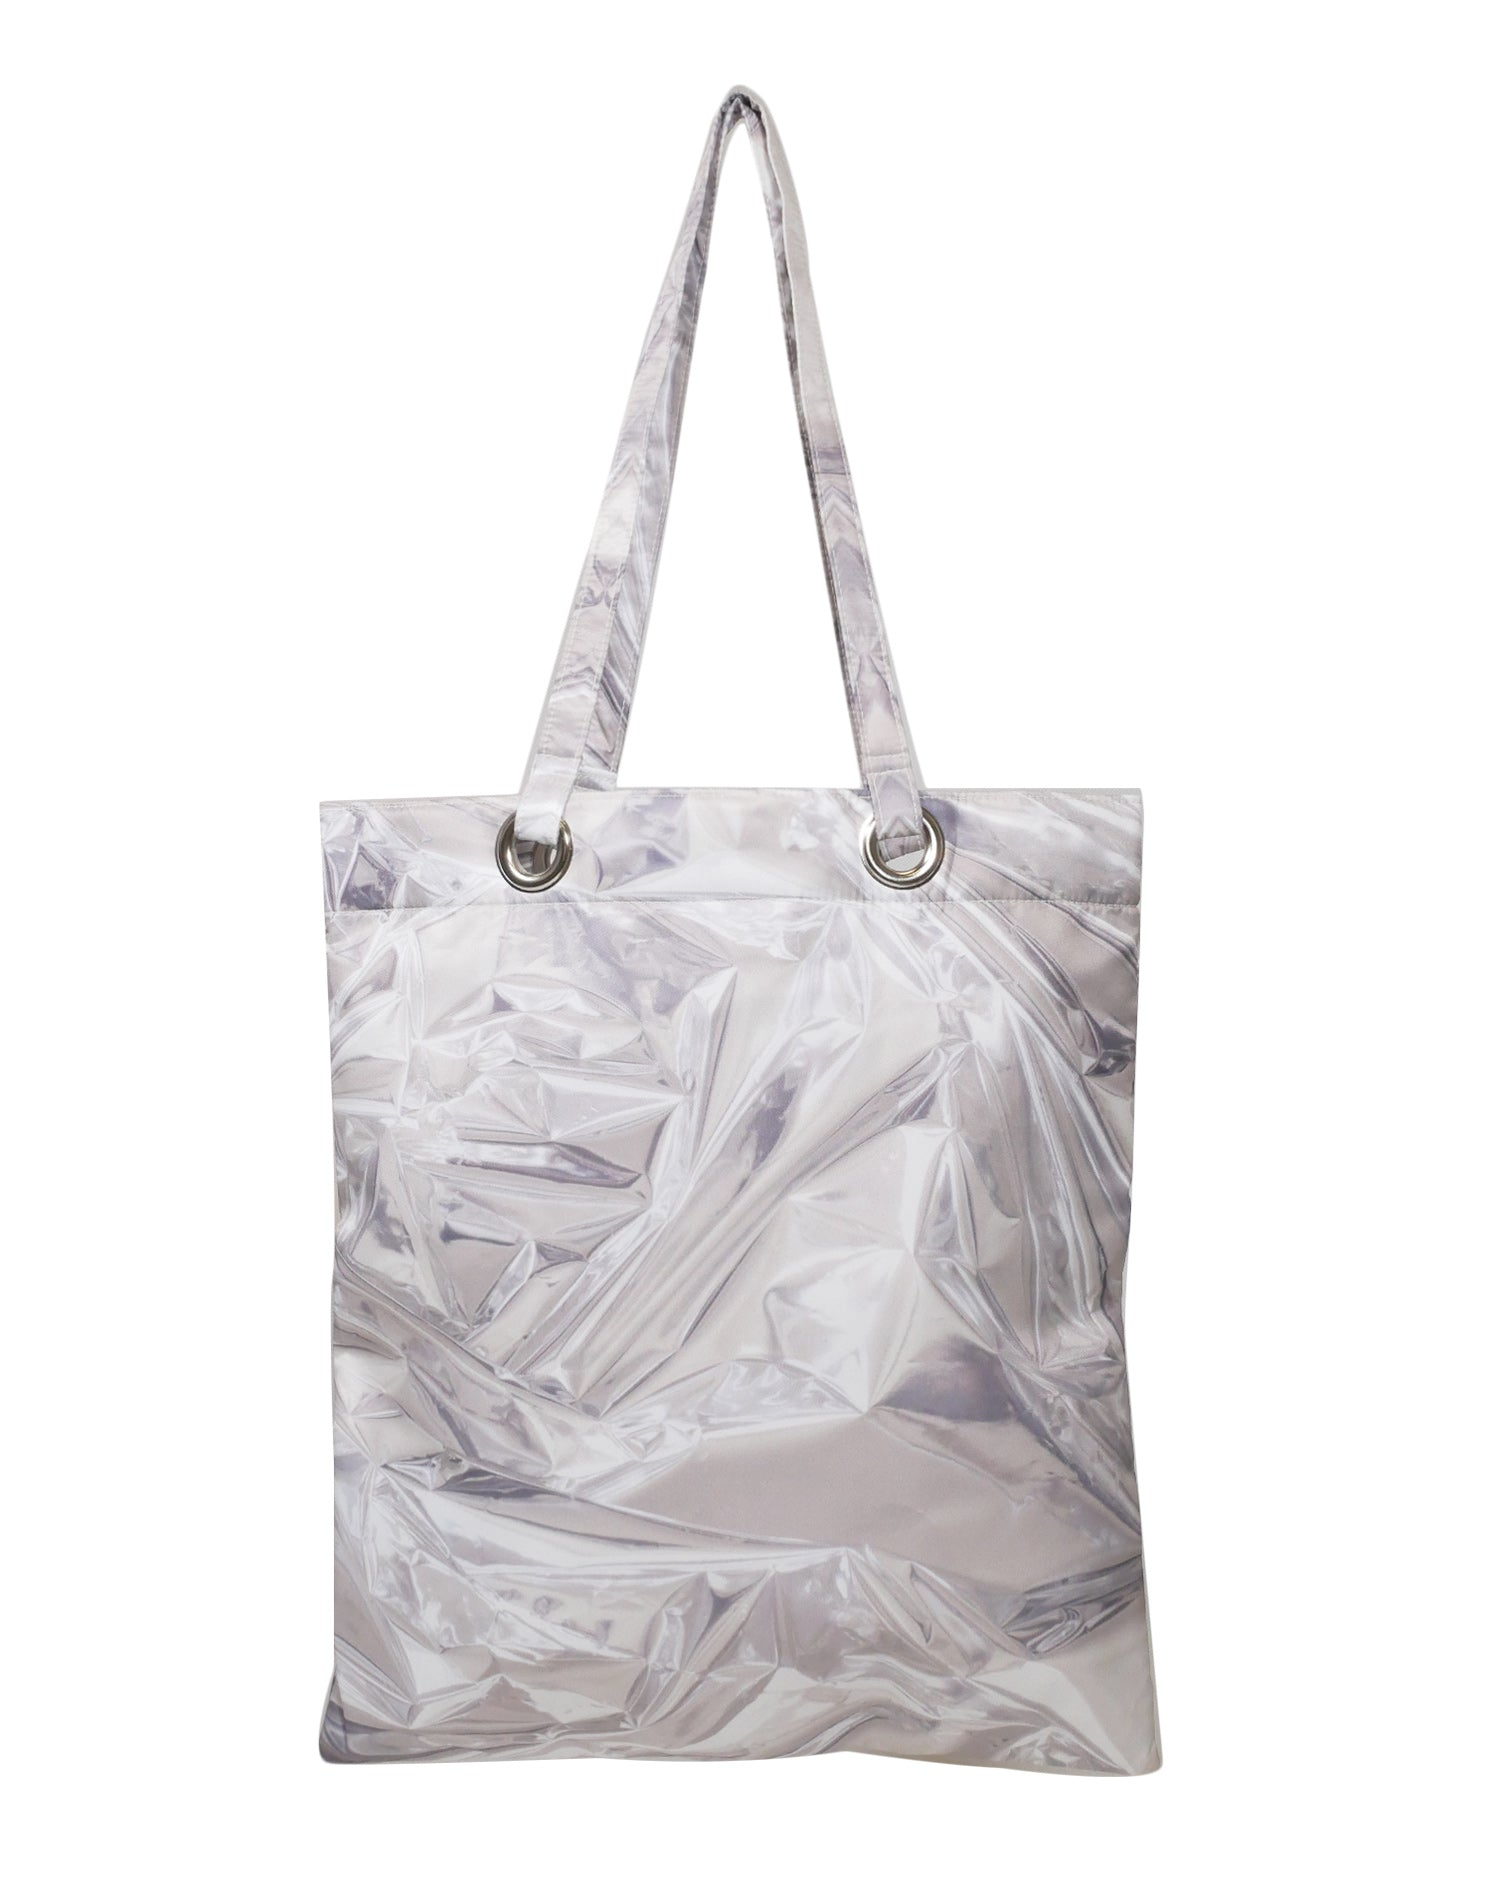 Reflection Premium Tote Bag.反射波纹高級側背袋